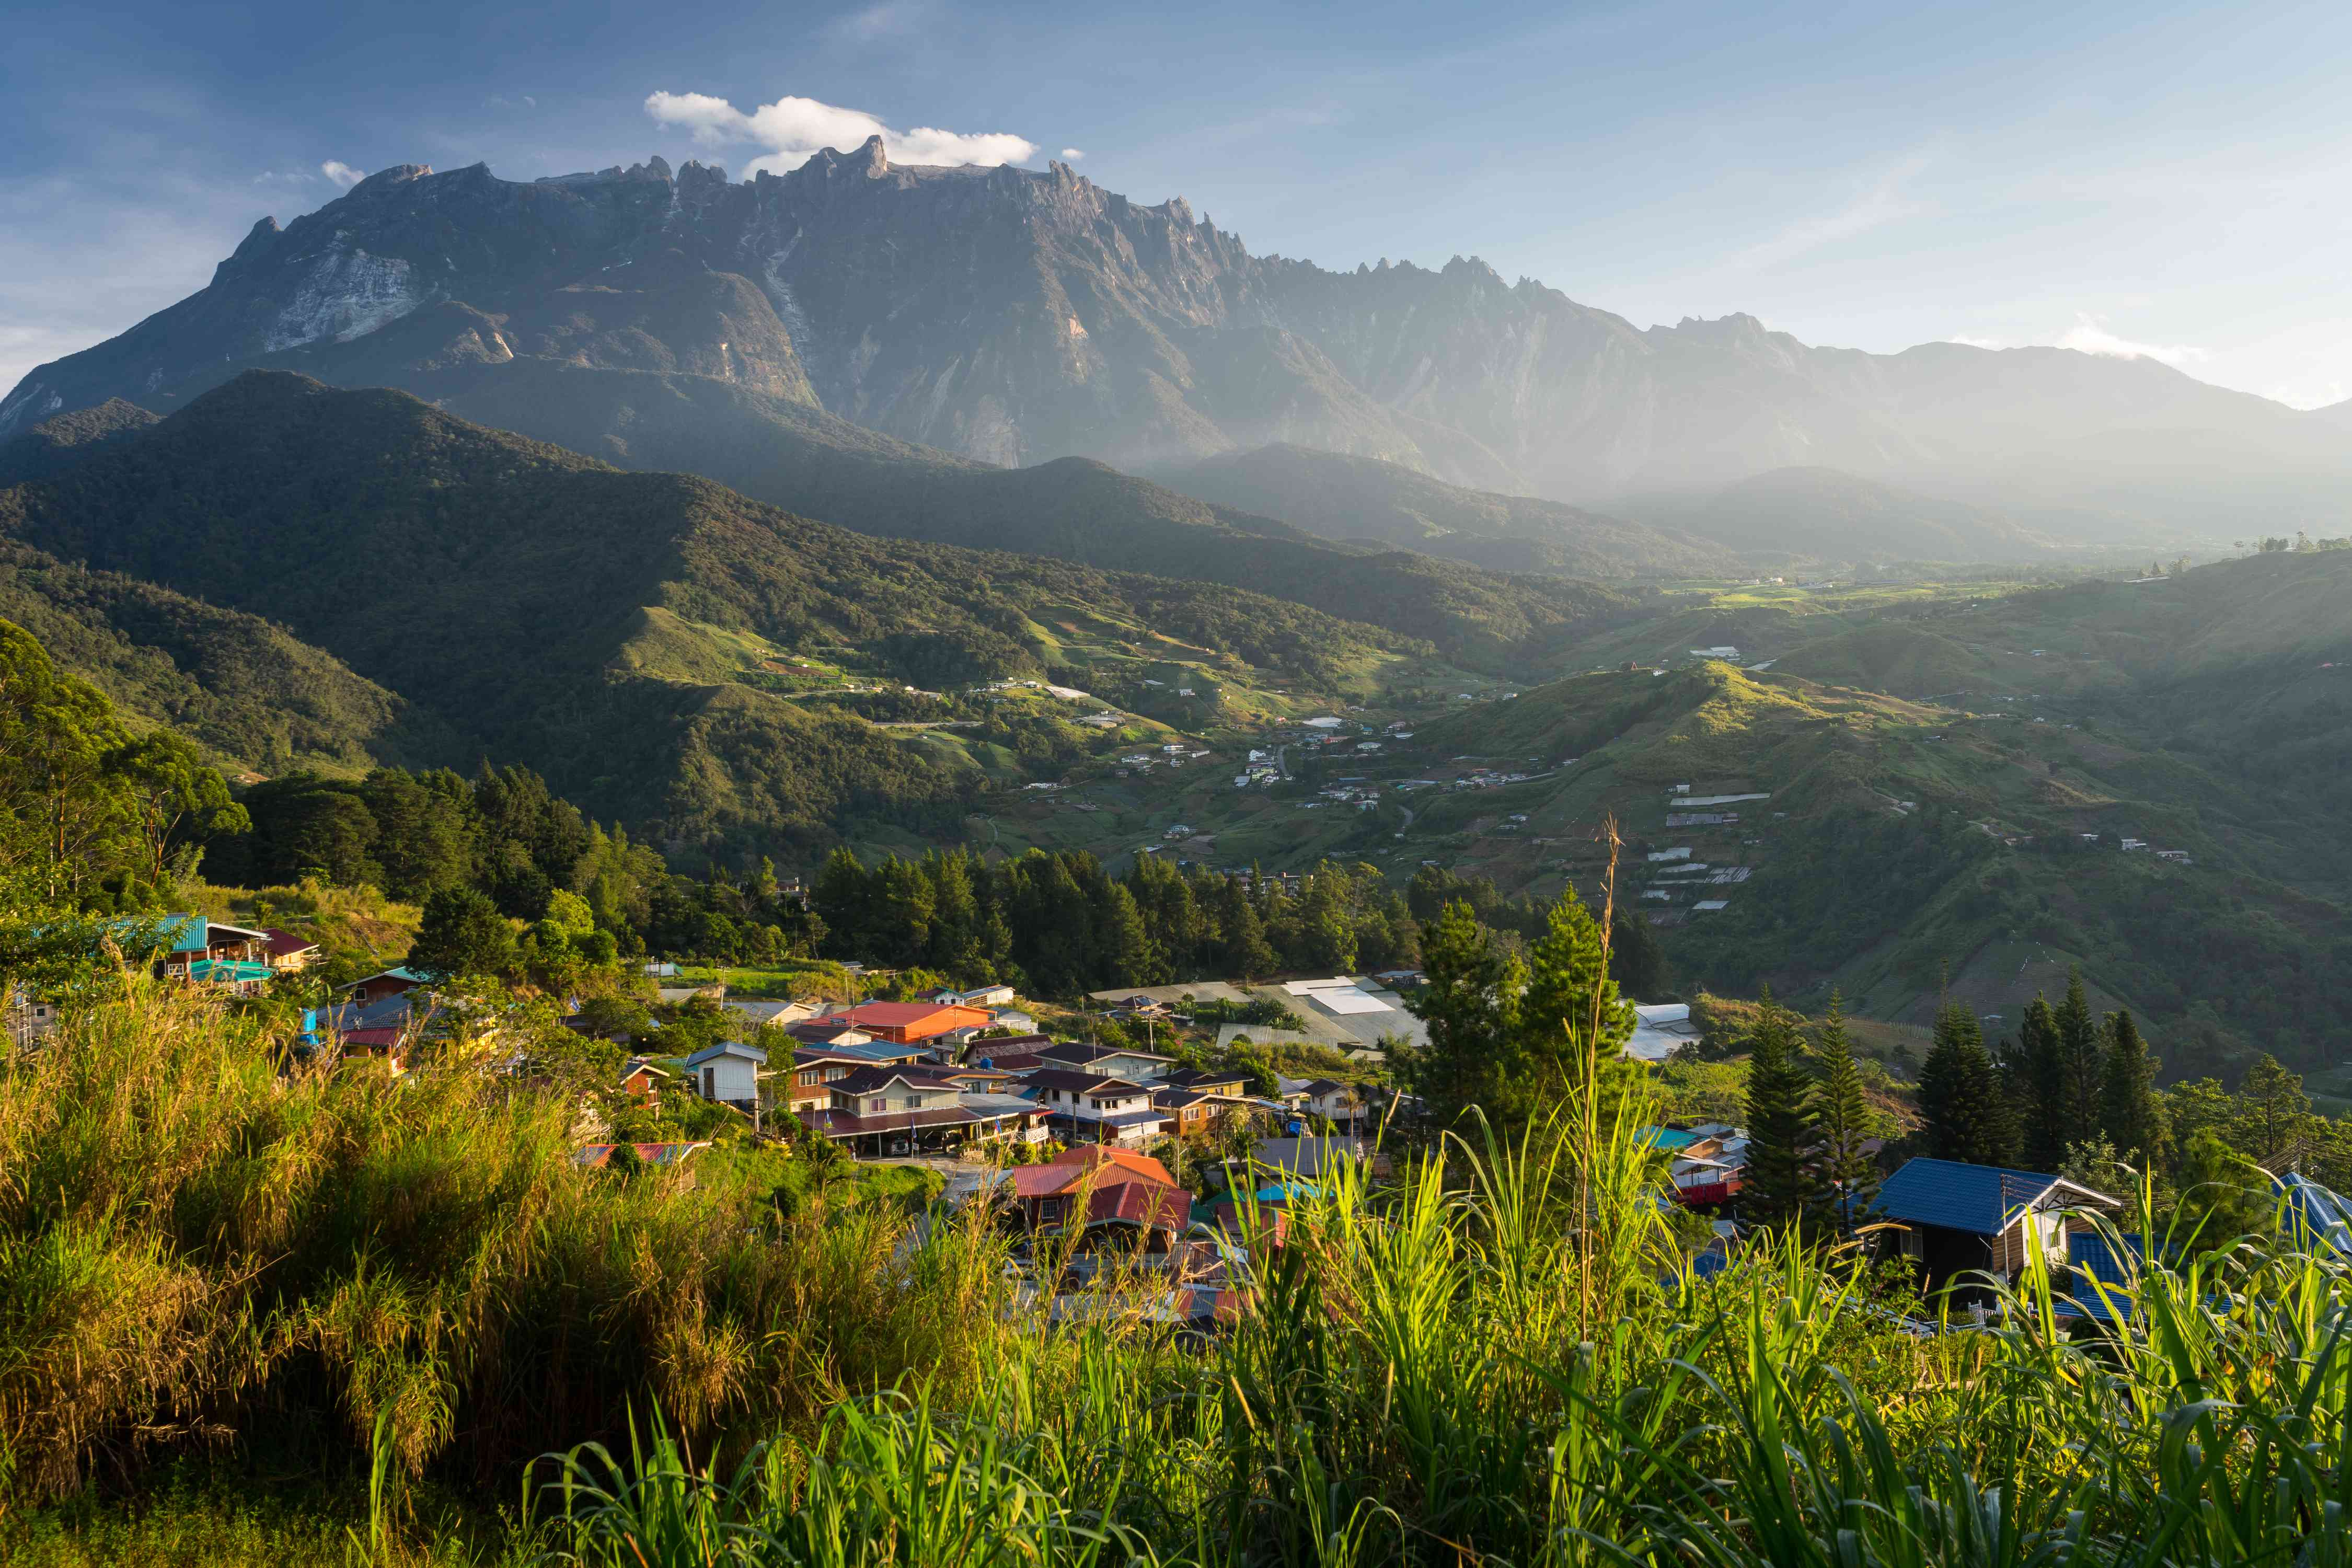 Mount Kinabalu stands about a village in Sabah, Borneo